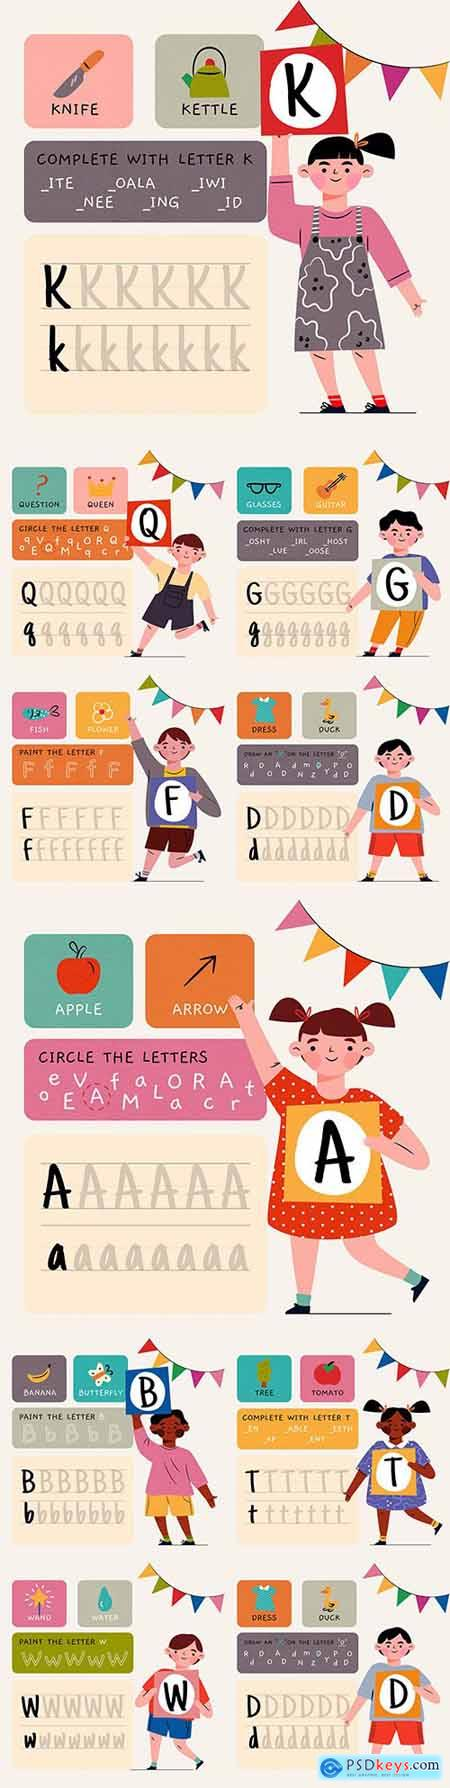 Alphabet letter word meaning and spelling illustrations